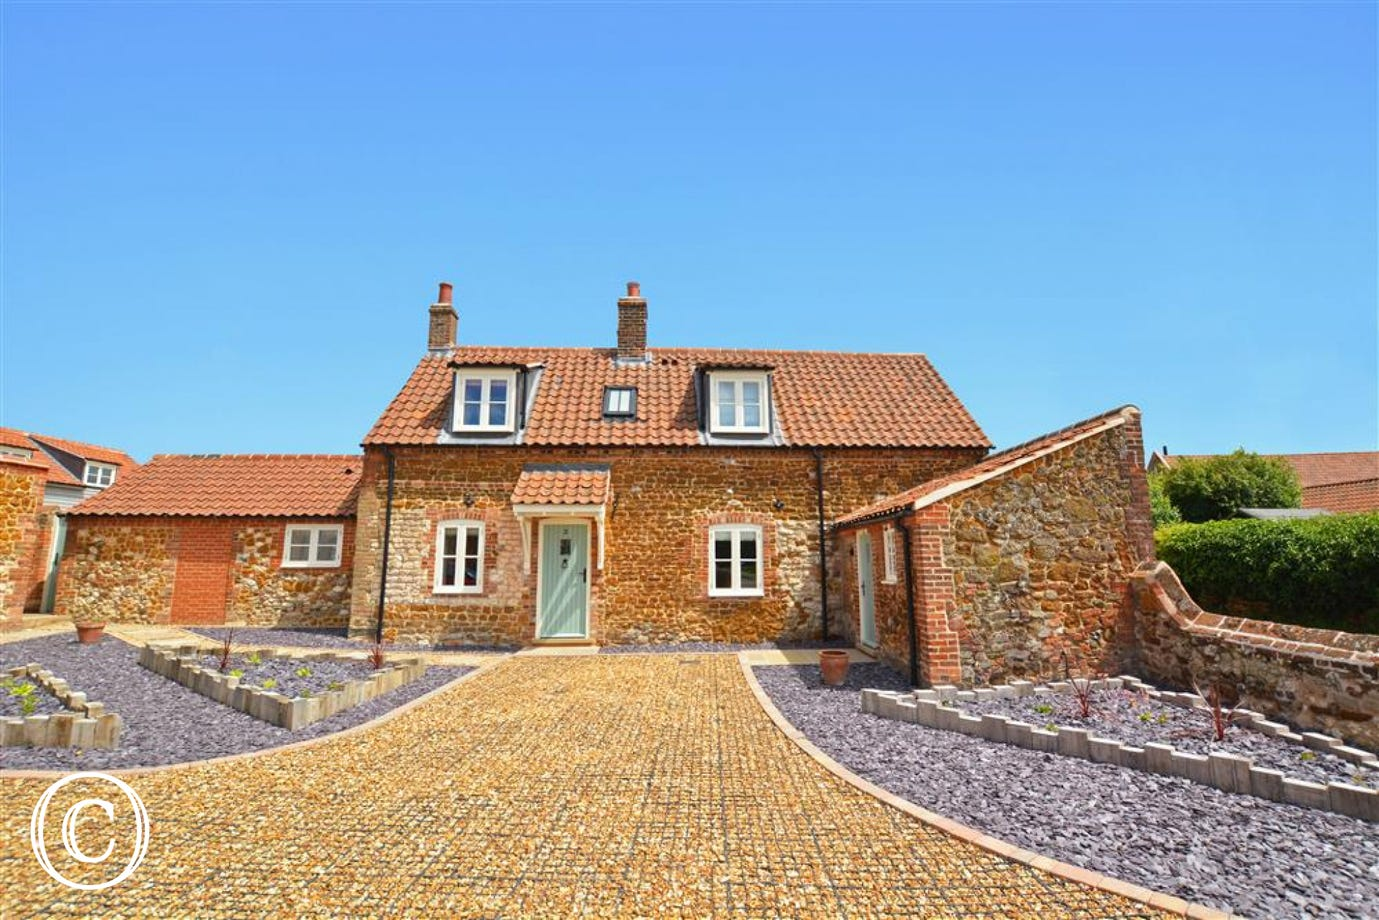 Exterior image of this traditional carrstone cottage